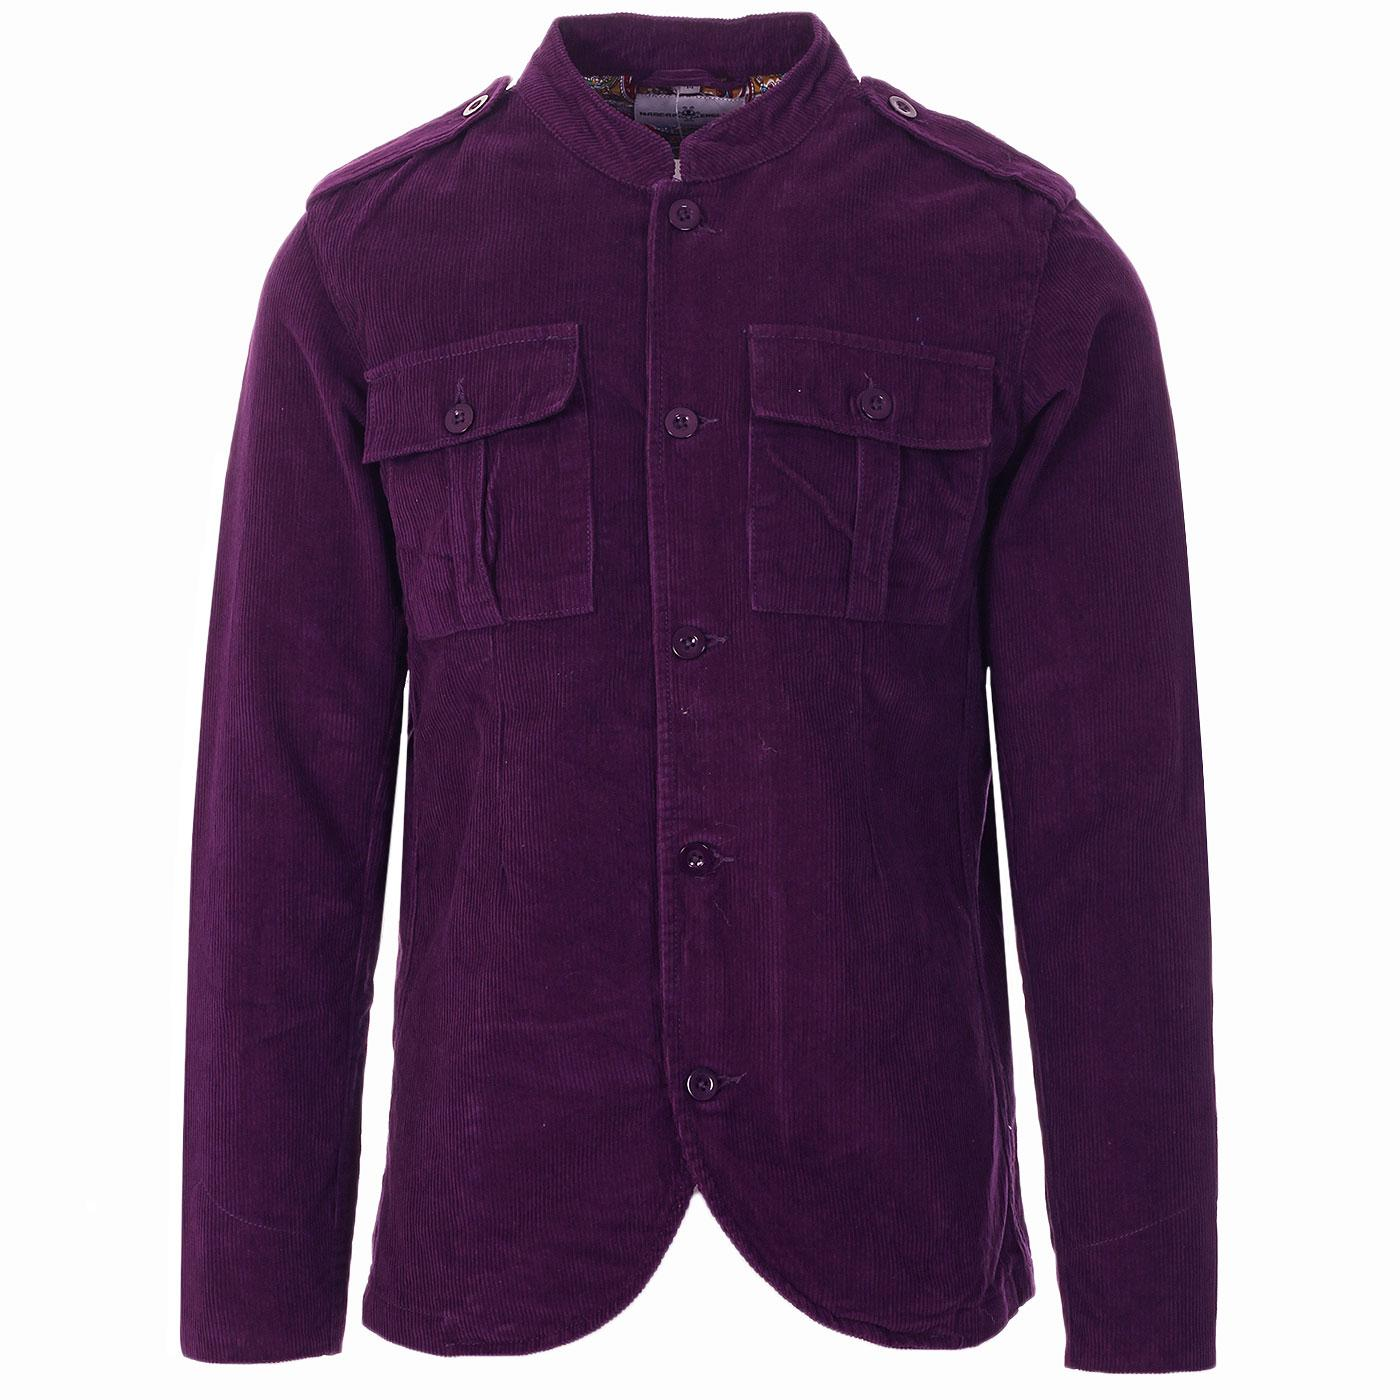 Madcap England Pepper Men's 60s Mod Cord Tunic Jacket in Imperial Purple